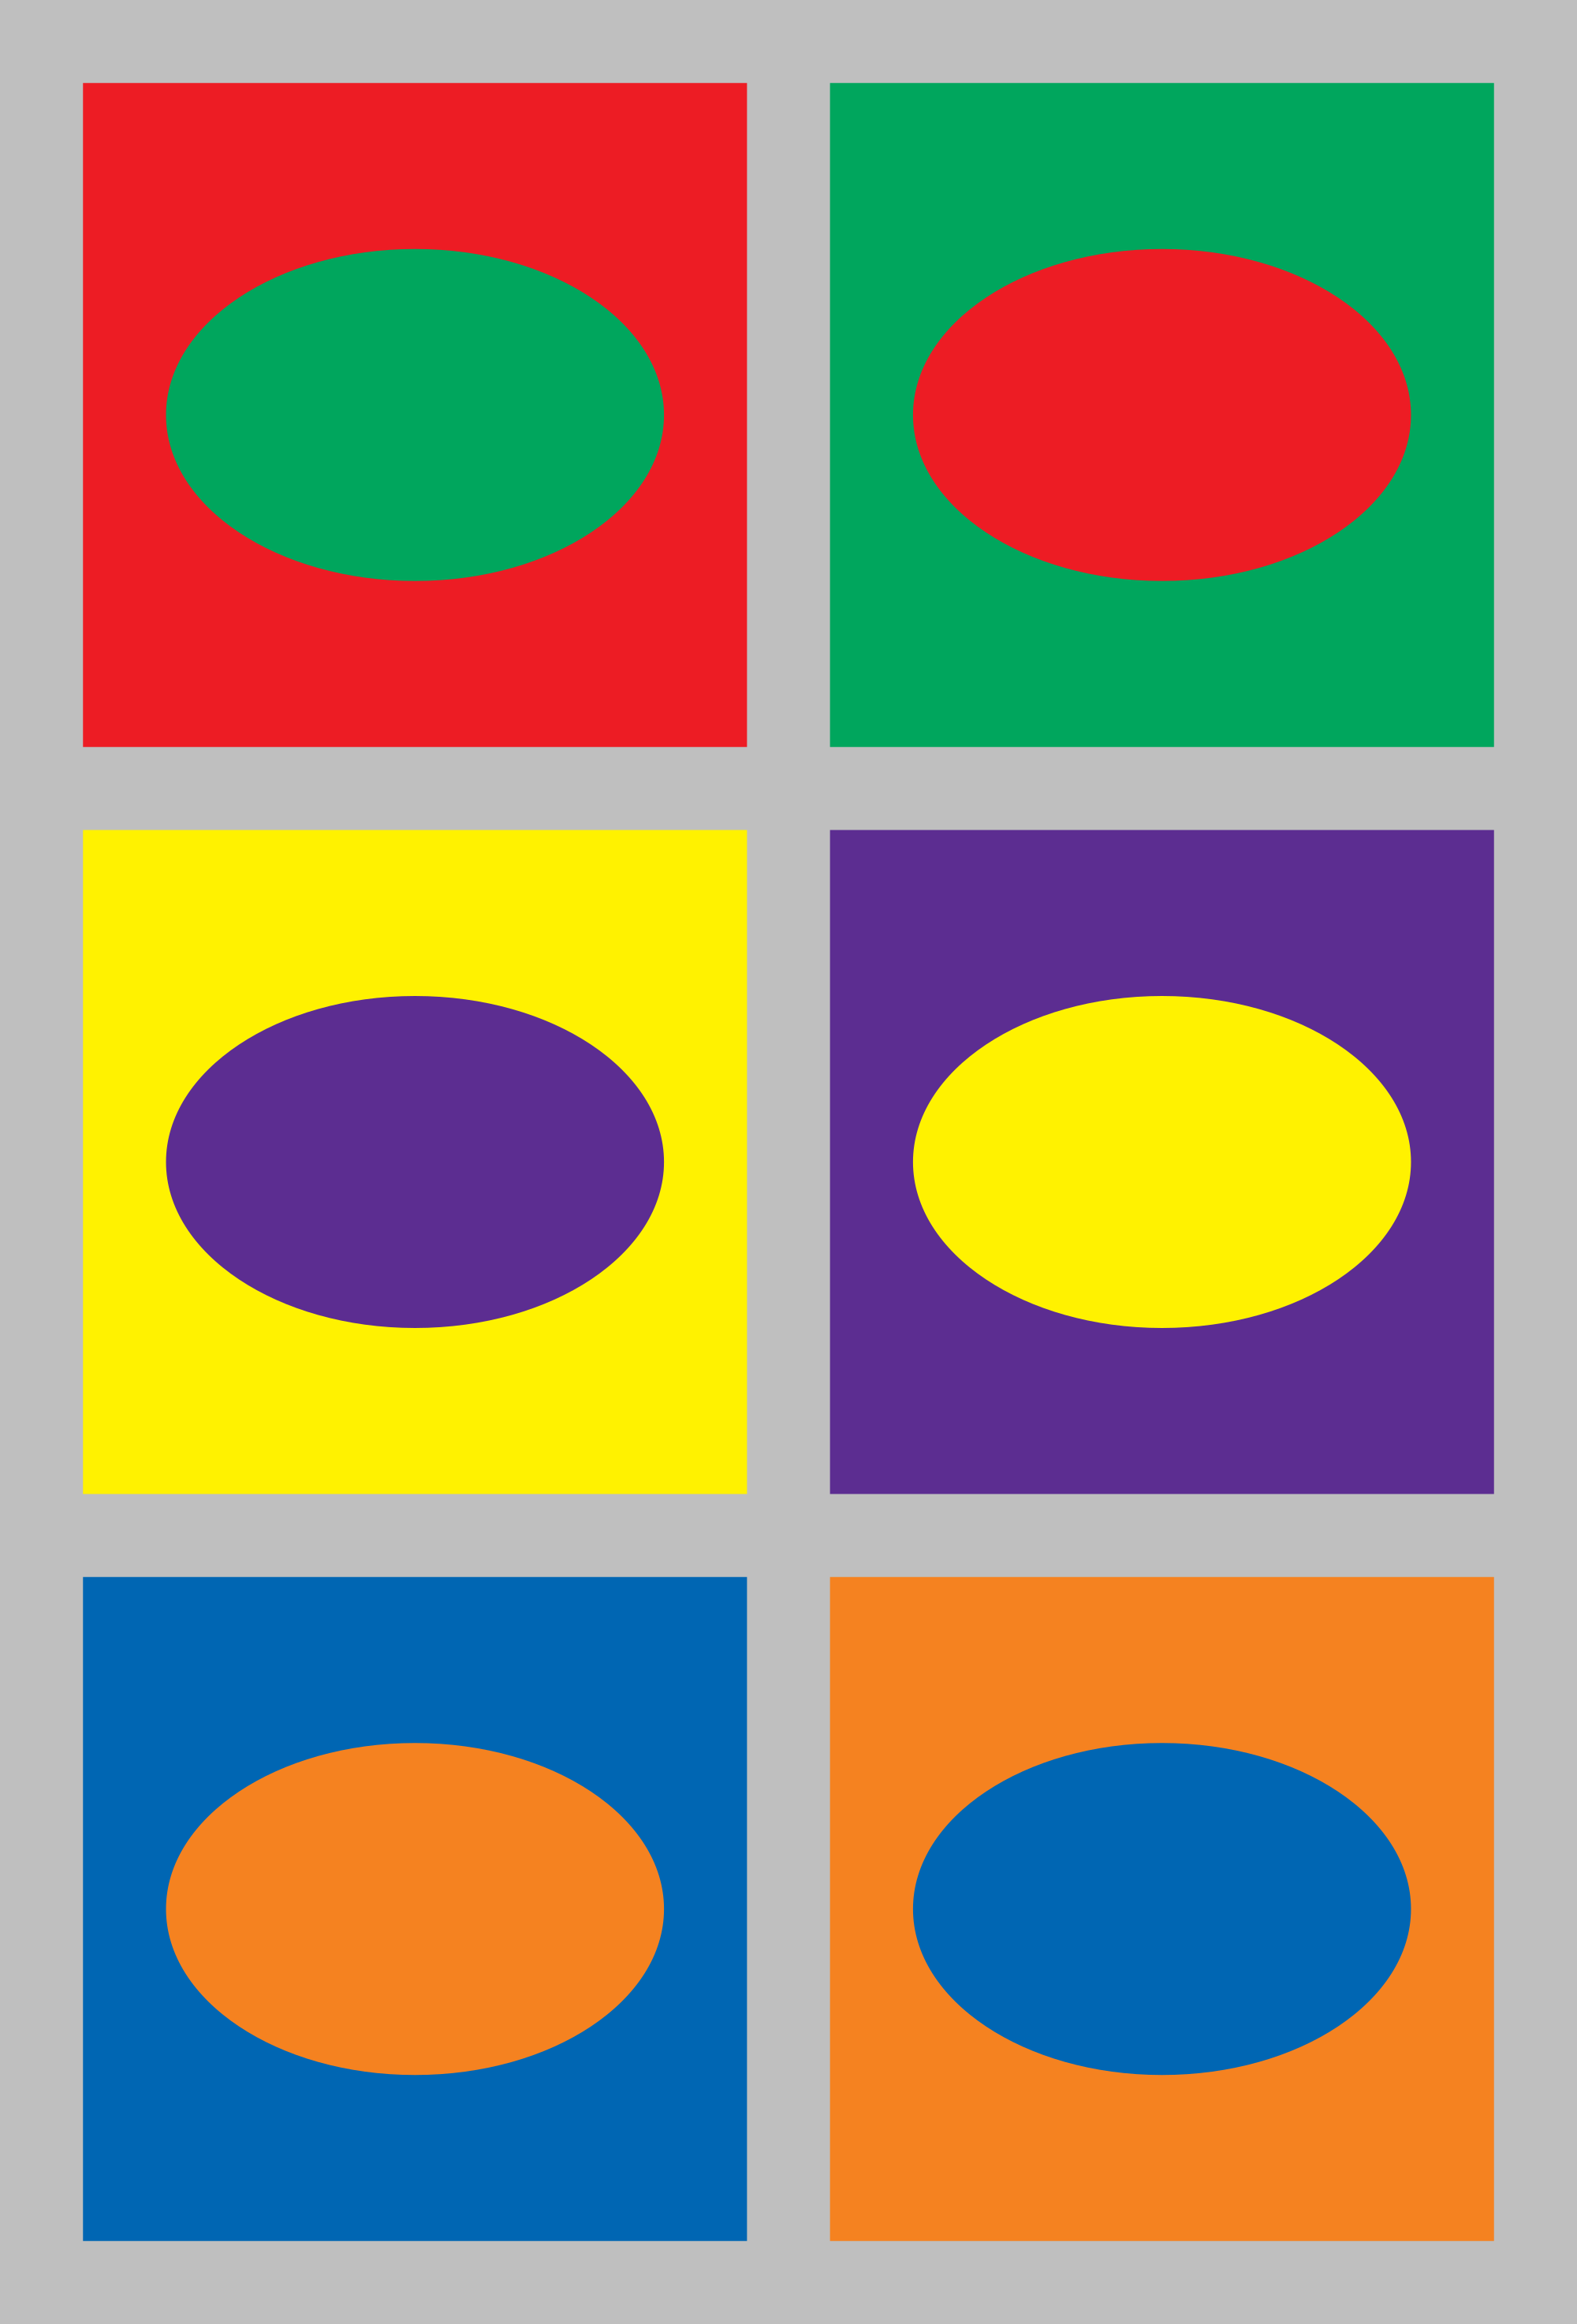 Several images of differently-colored ovals on differently-colored backgrounds